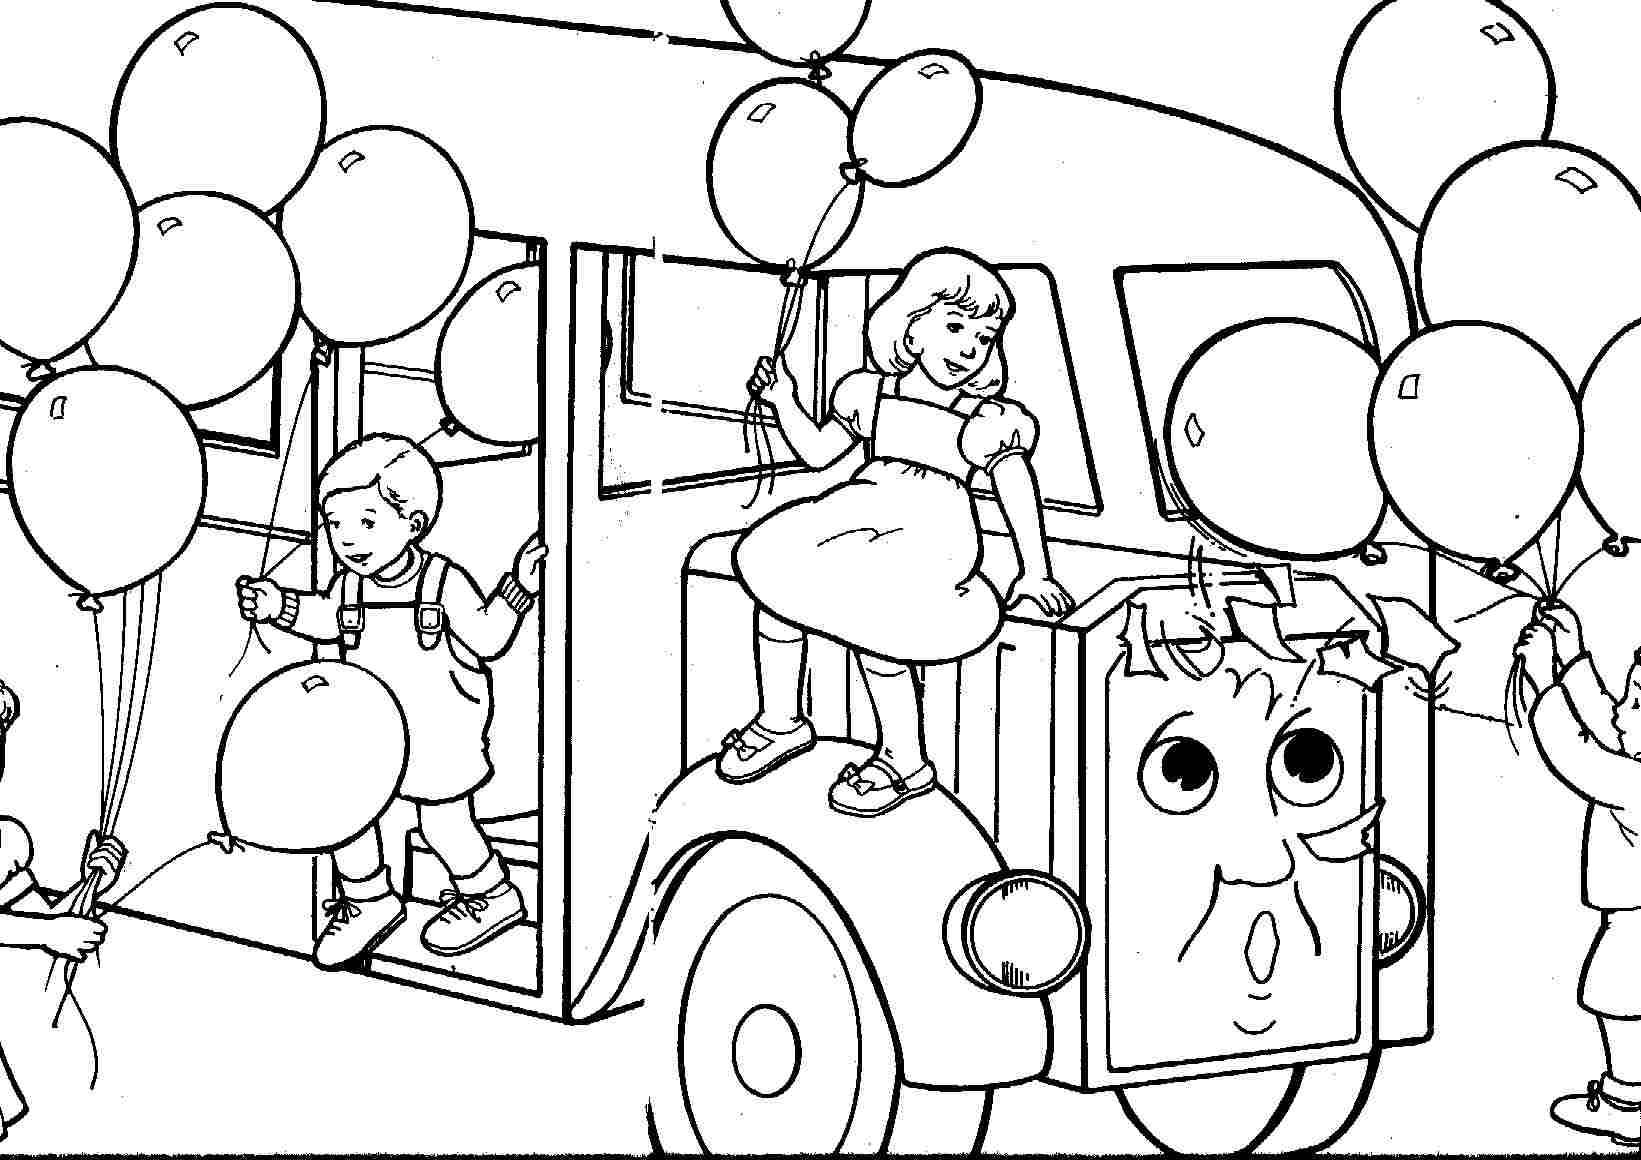 coloring pages of thomas and friends thomas and friends coloring pages snowman for kids friends pages thomas coloring of and